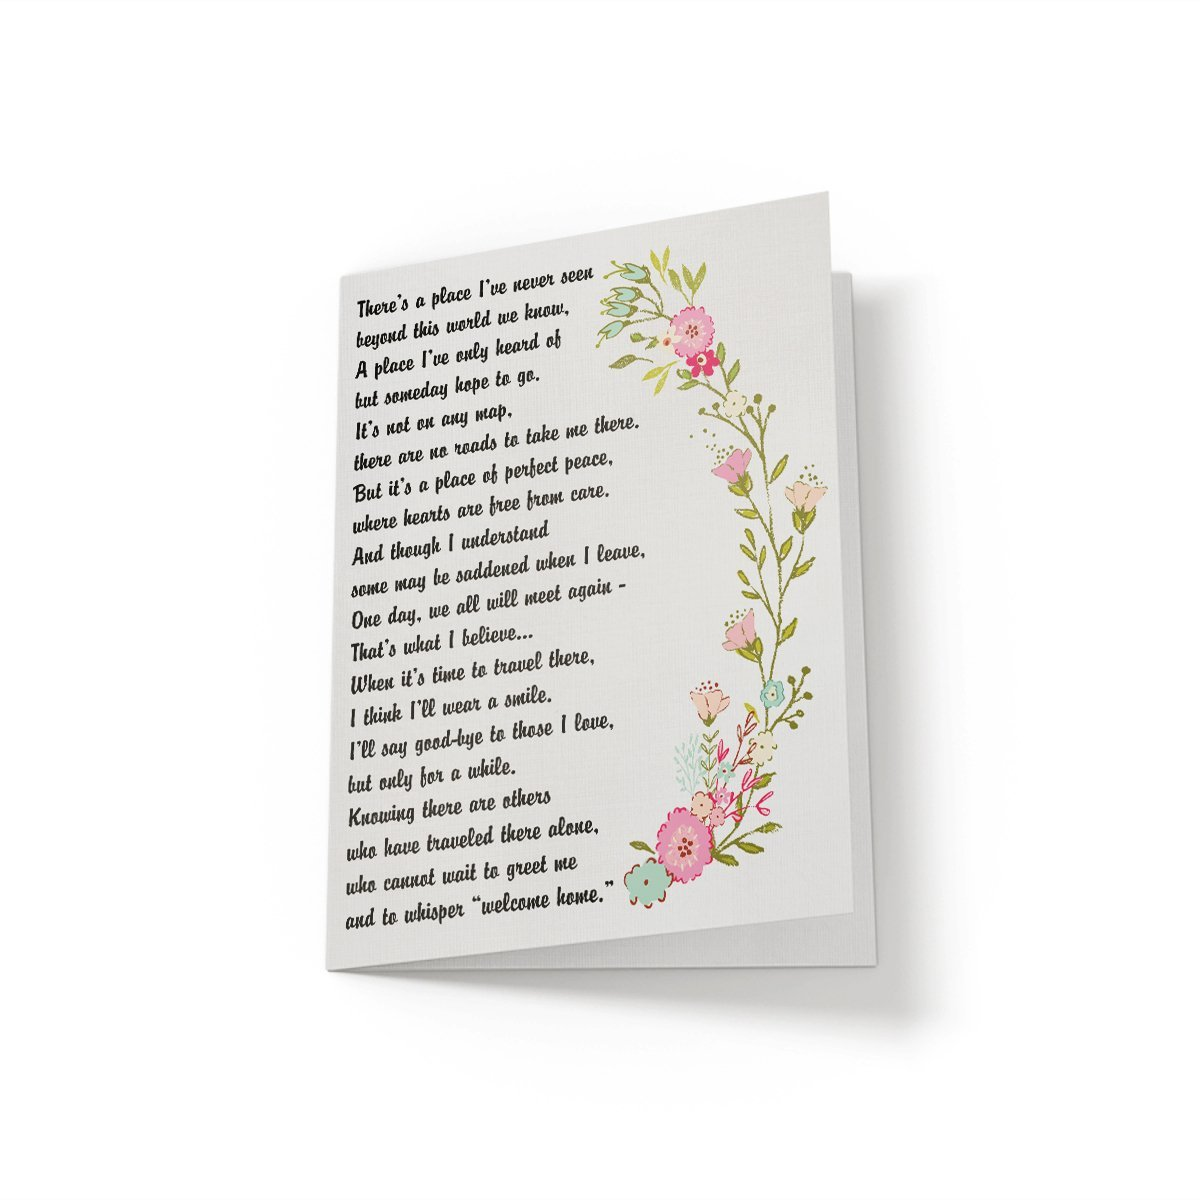 There's a better place - Greeting Card - Netties Expressions